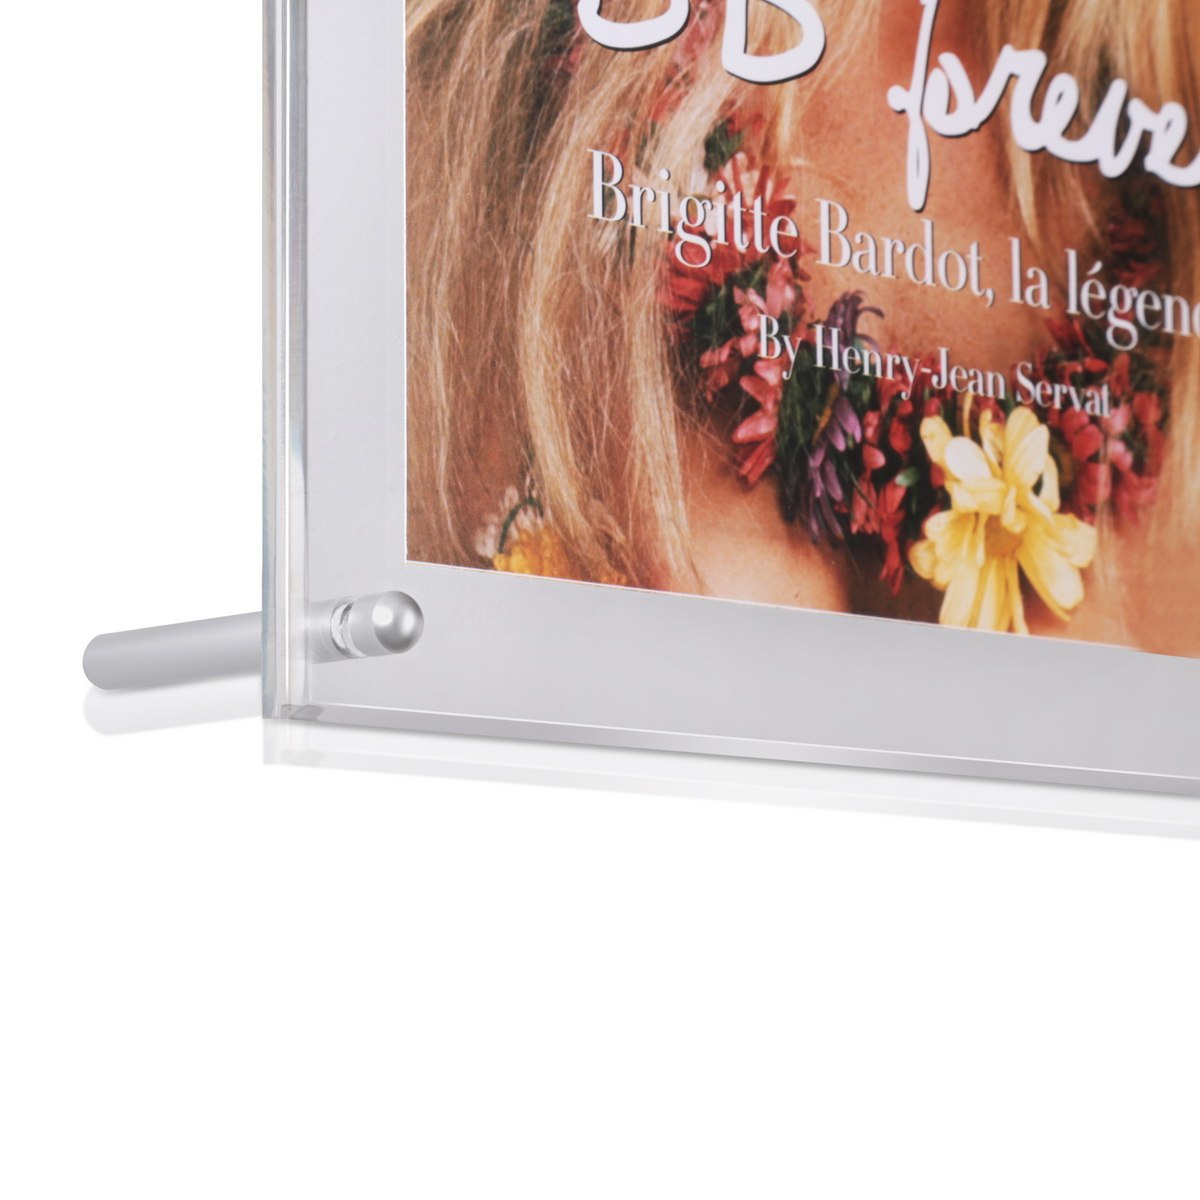 12 1/2'' x 10'' Clear Acrylic Frame Kit with 3'' Clear Anodized Aluminum Rounded Desktop Standoffs